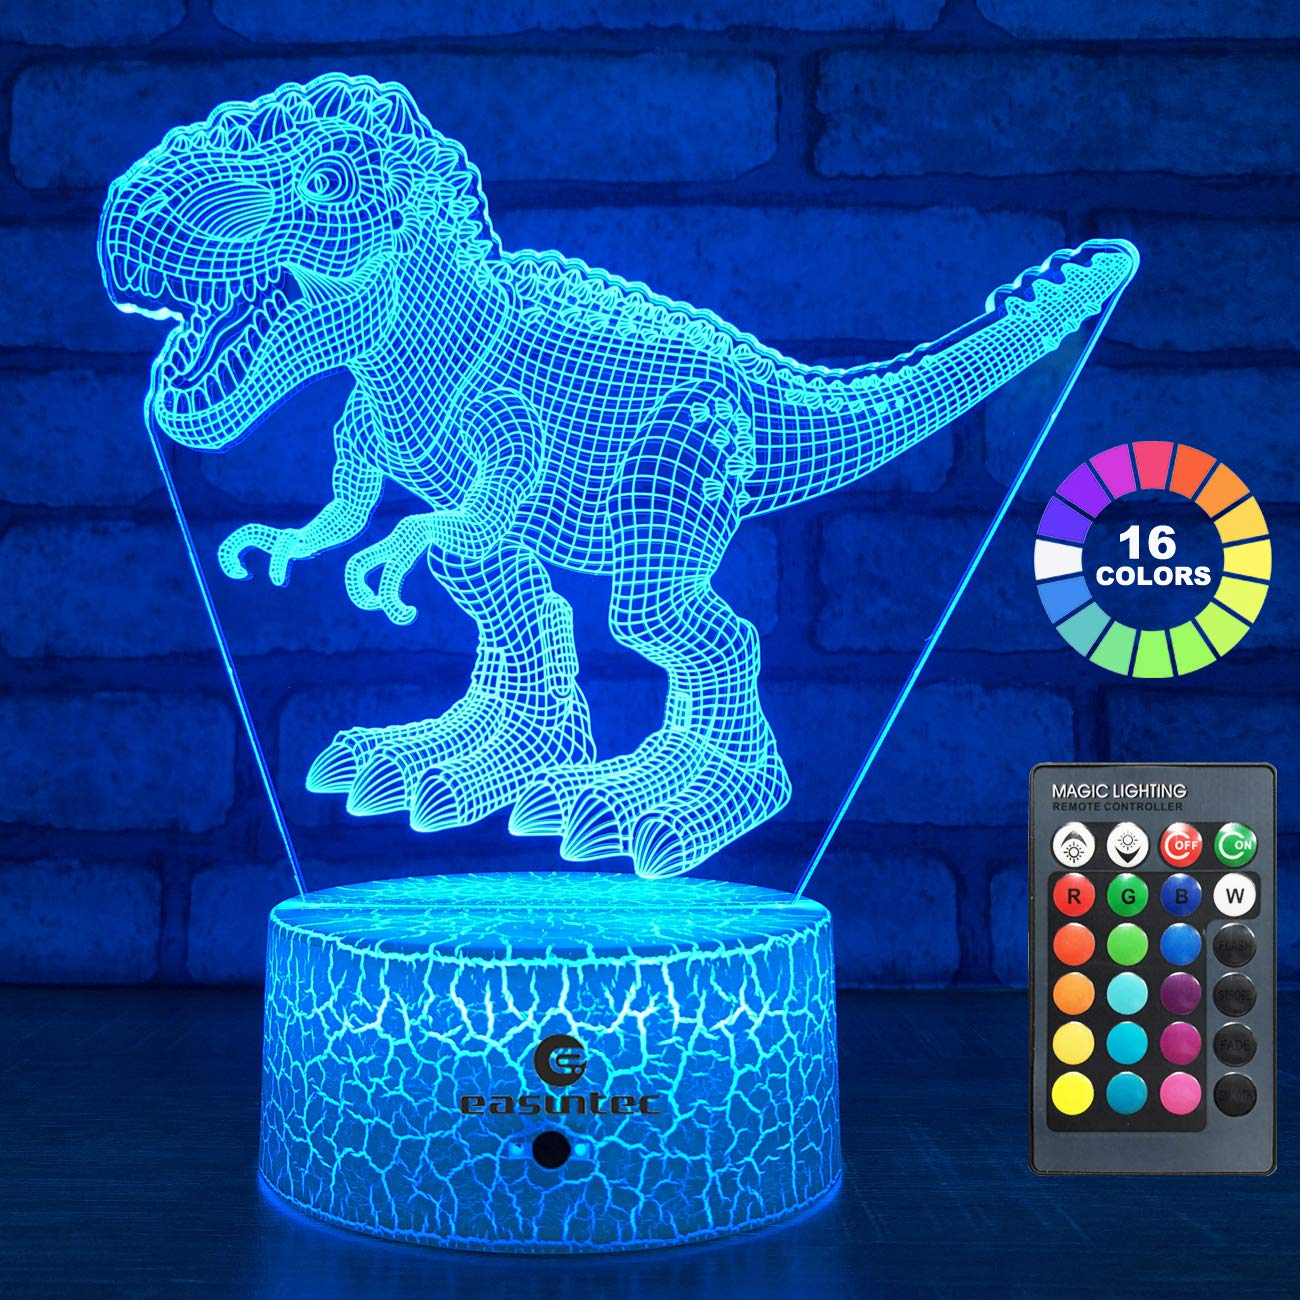 easuntec Dinosaur Toys 3D Night Light with Remote & Smart Touch 7 Colors + 16 Colors Changing Dimmable TRex Toys 1 2 3 4 5 6 7 8 Year Old Boy or Girl Gifts (TRex 16WT) by easuntec